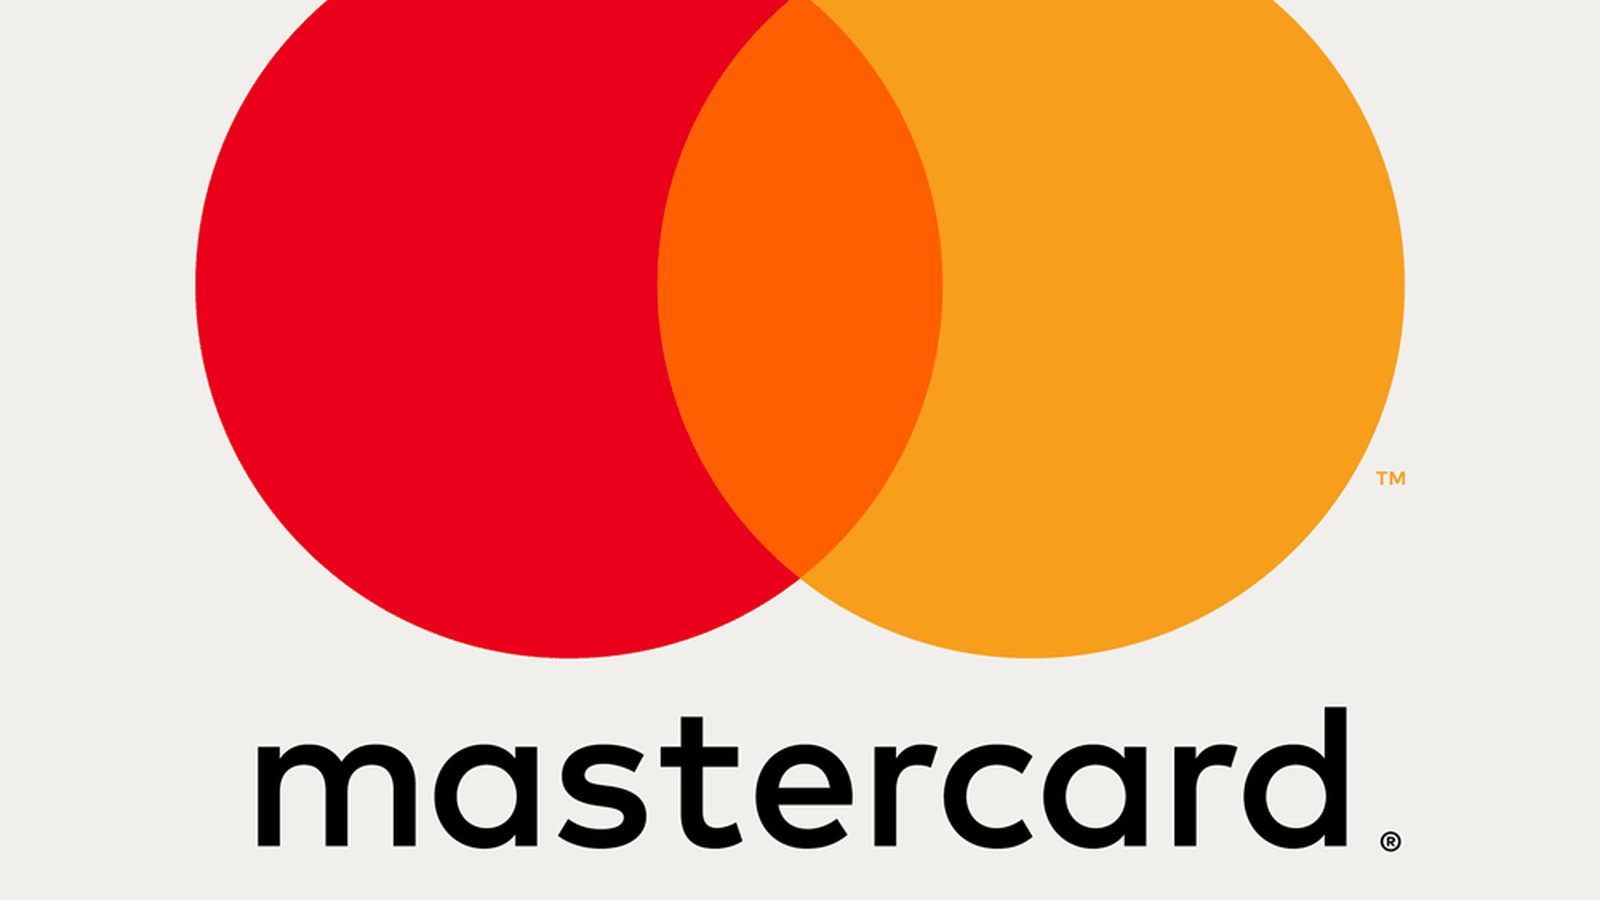 Mastercard redesigns its iconic logo for the digital age - The Verge